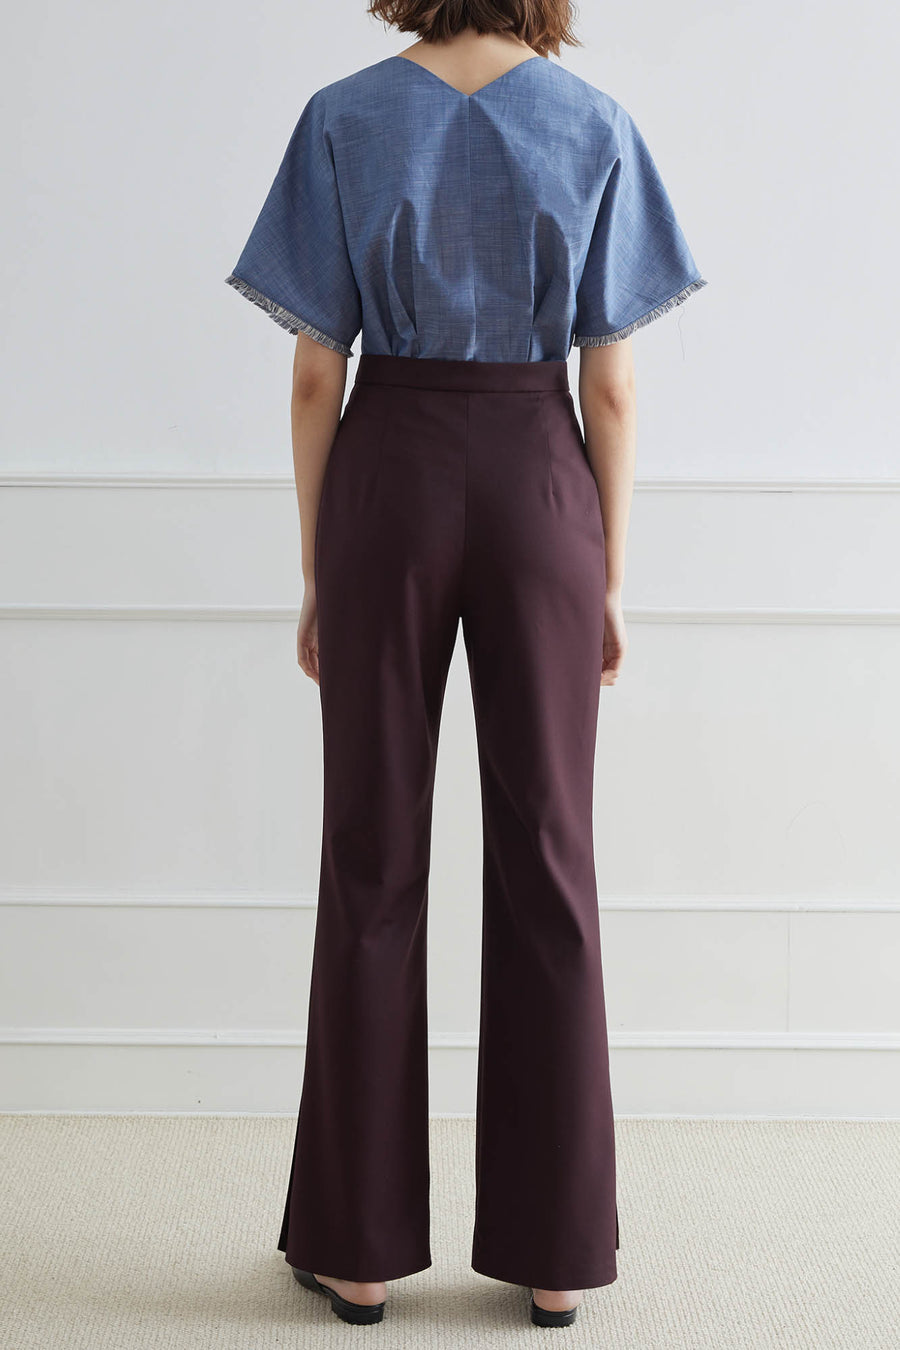 TOLEDO High-Waisted Flare Pants